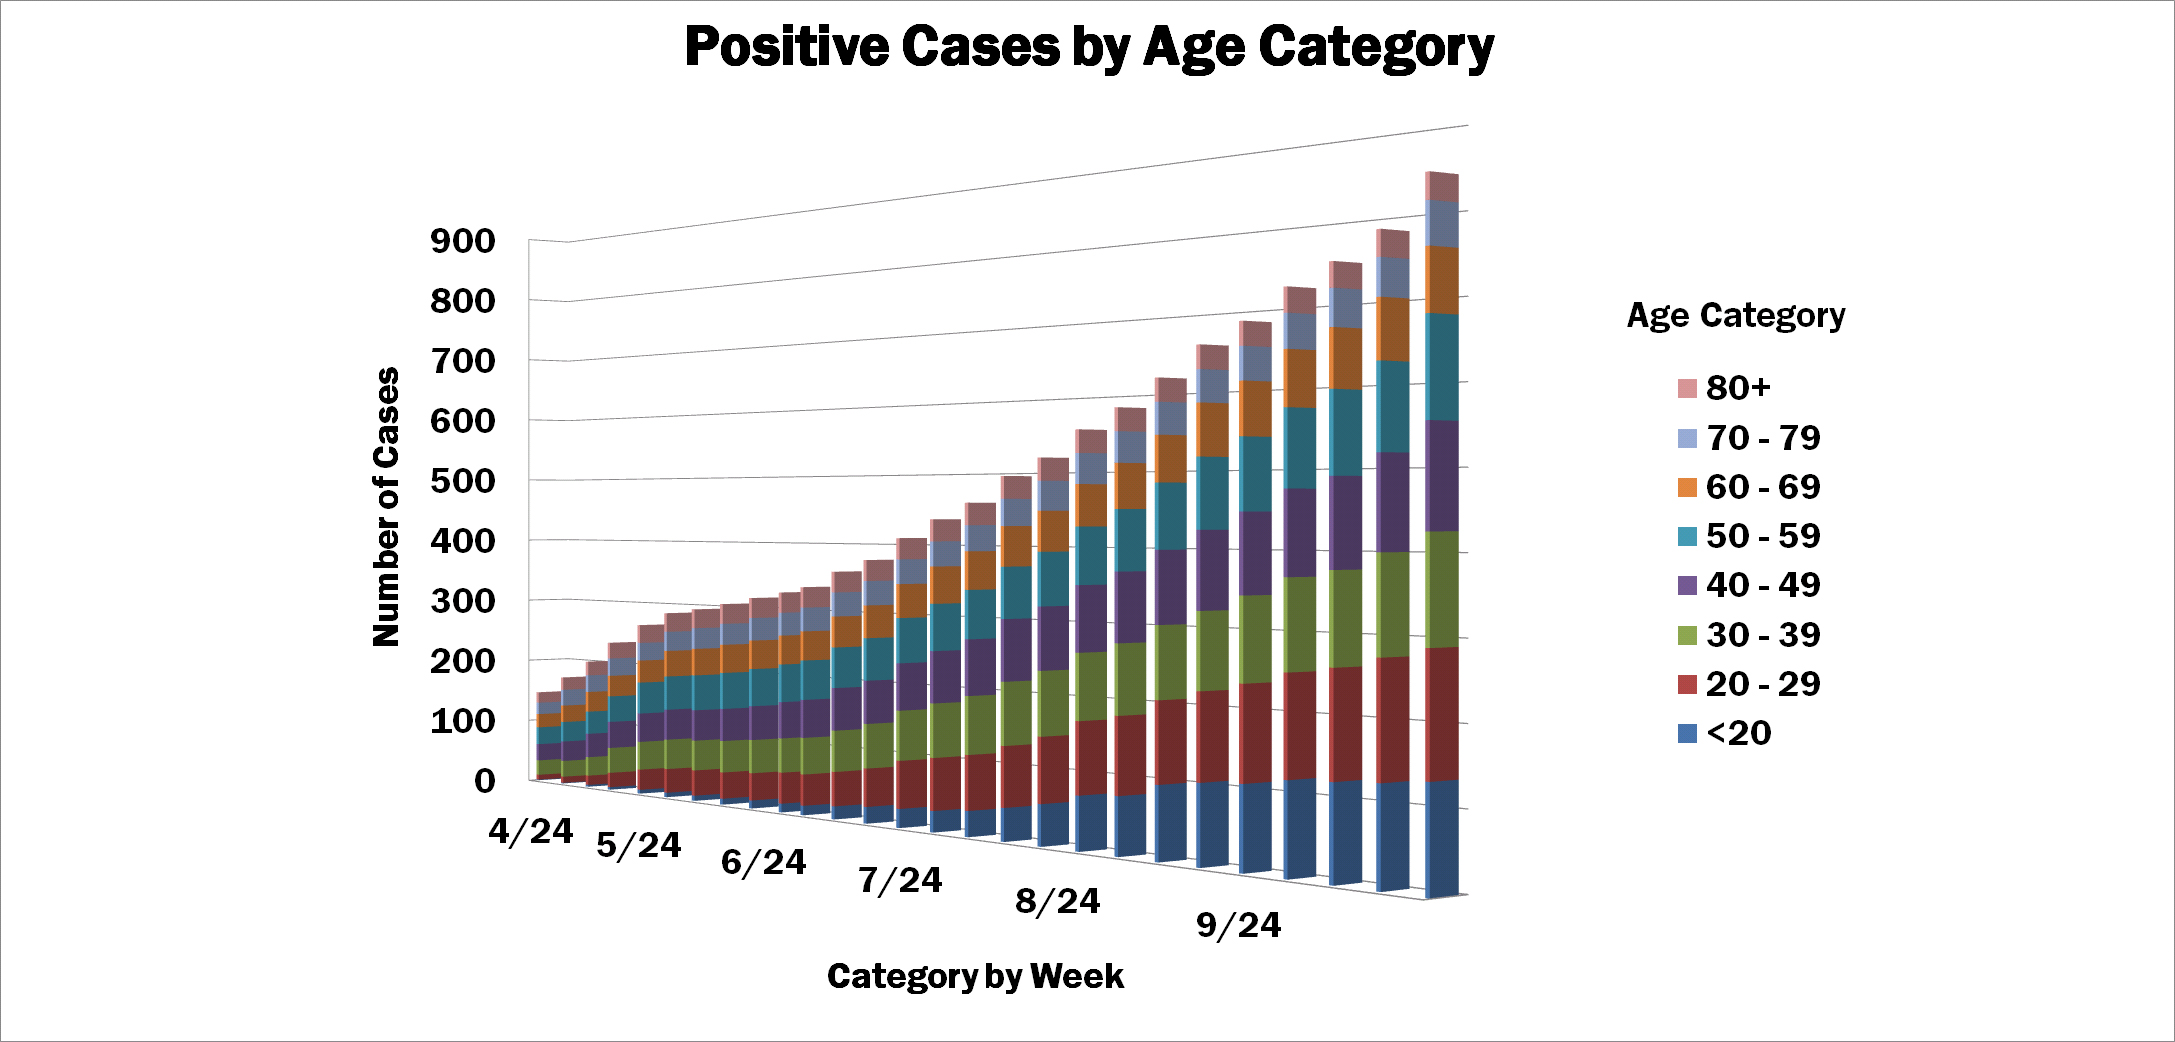 Graph depicting cases by age category as share of total over time